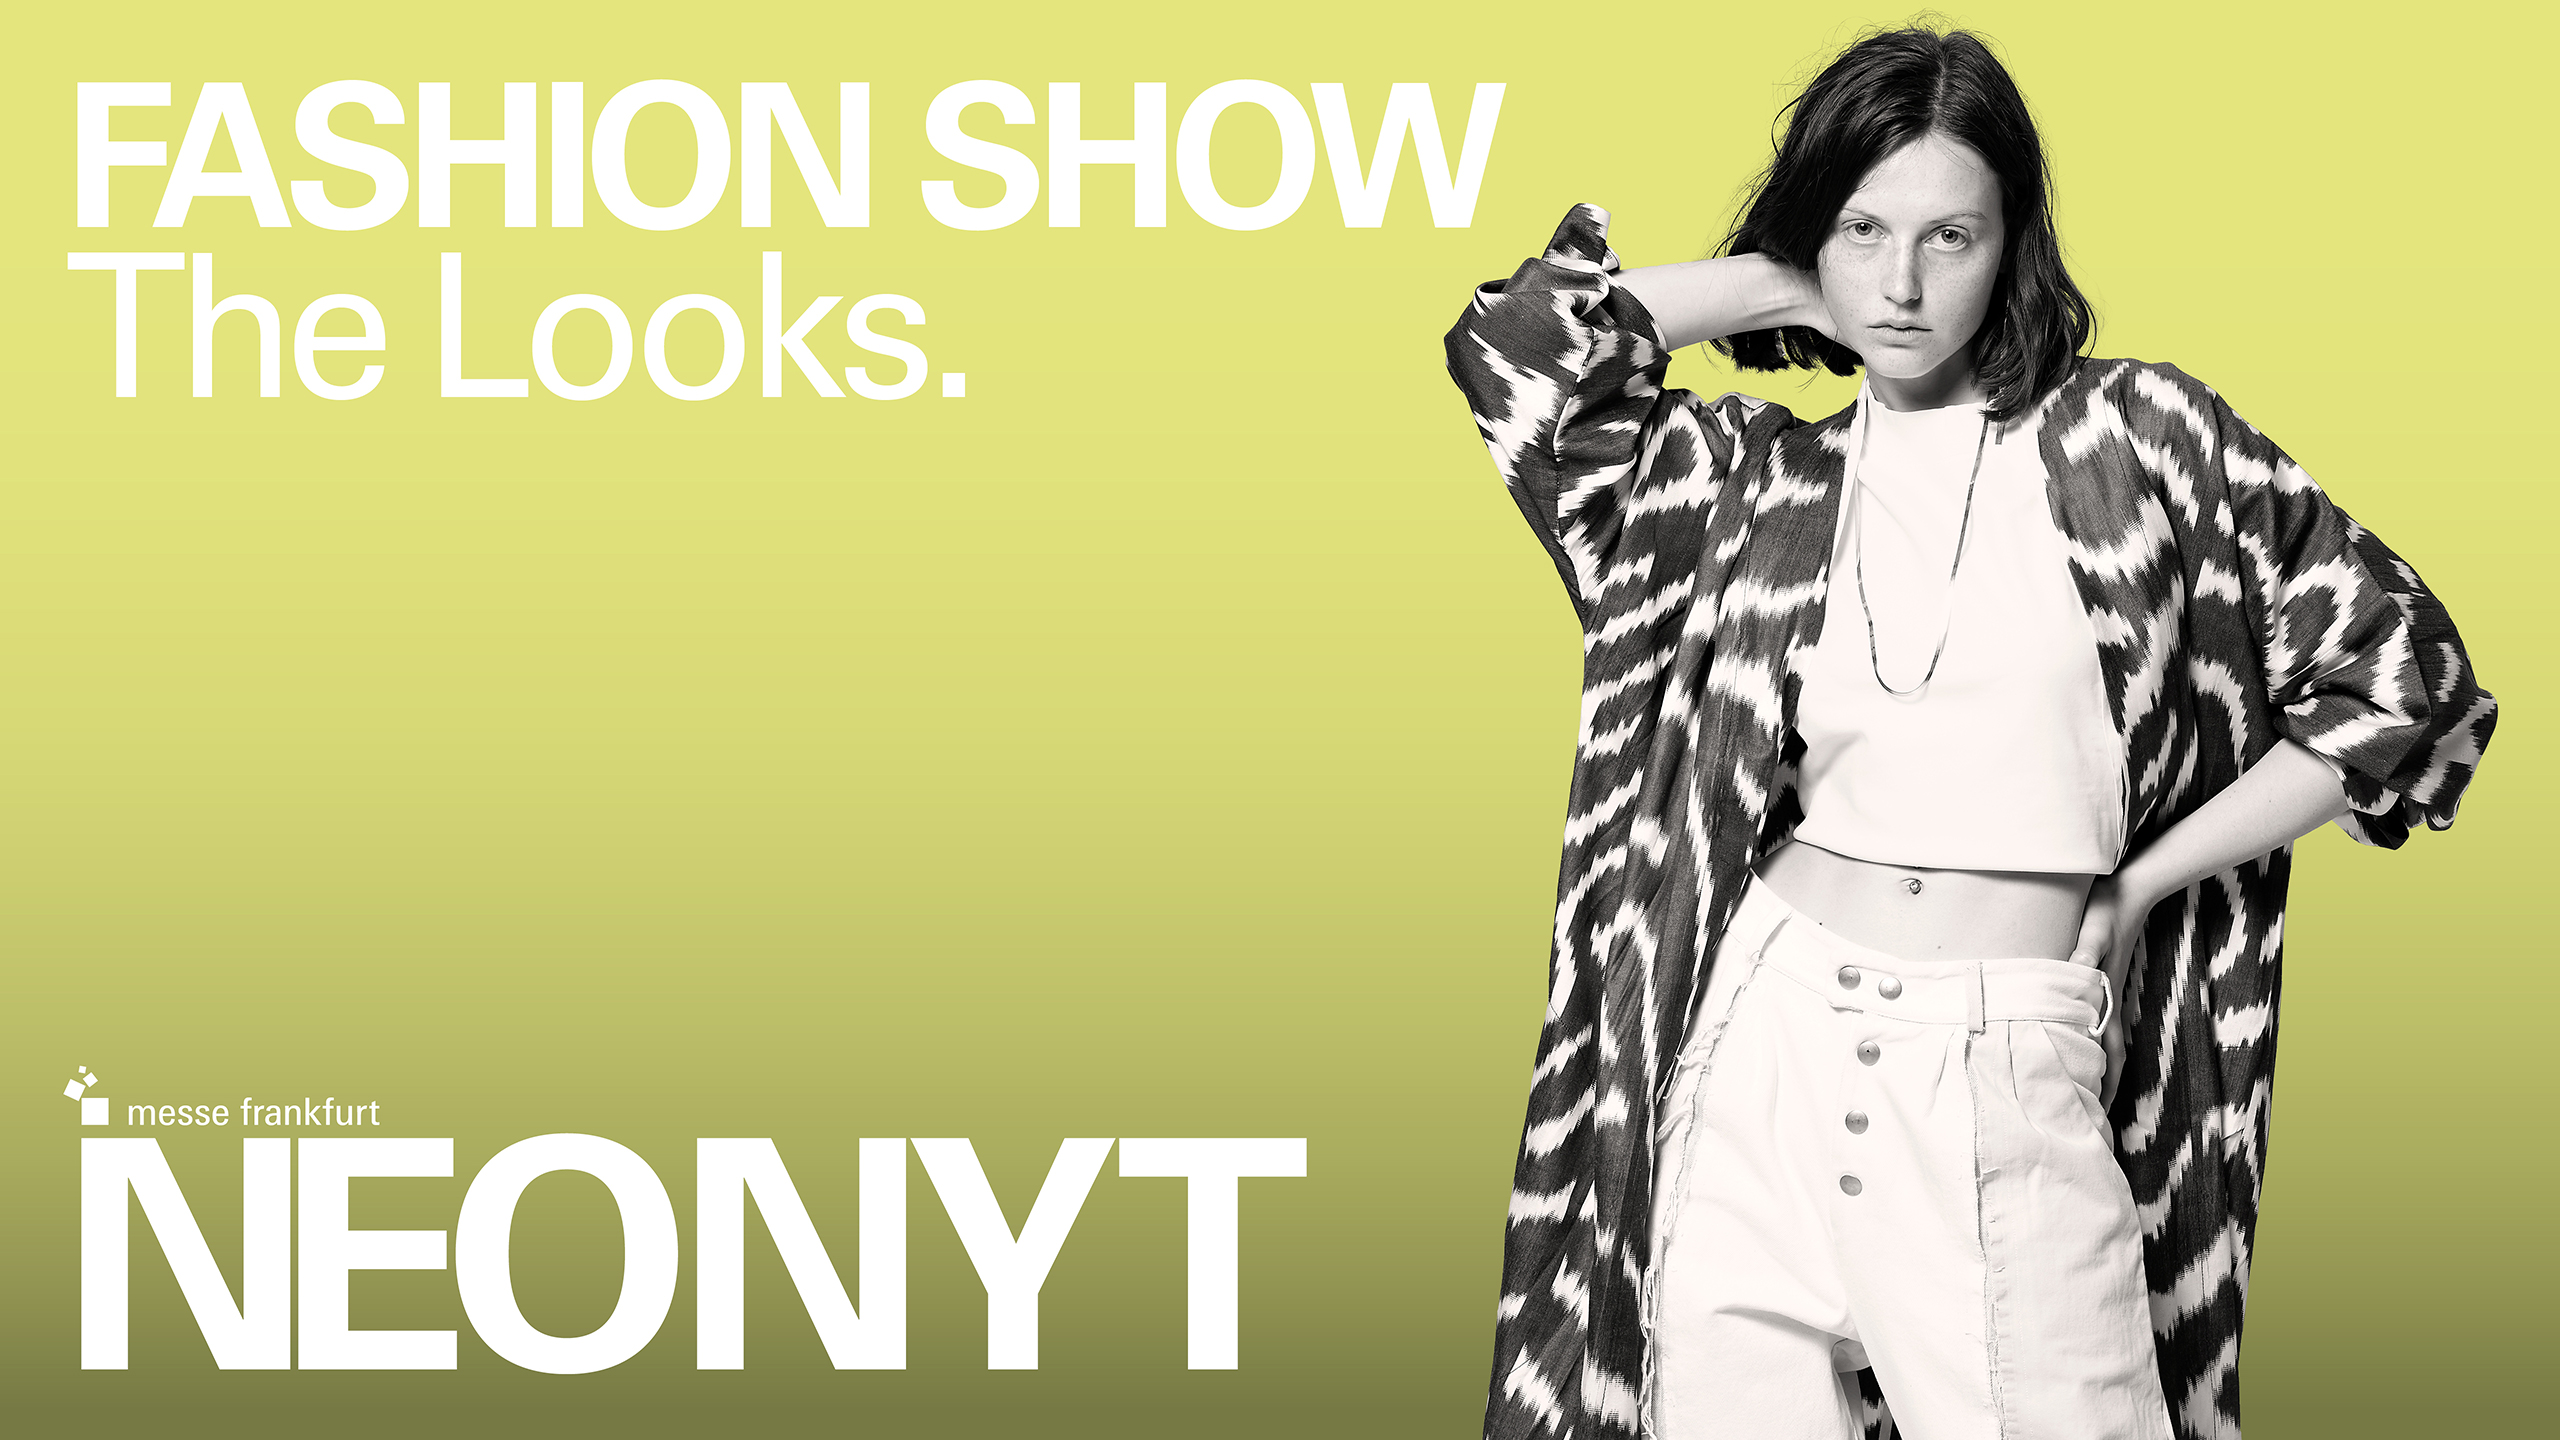 Neonyt Fashion show